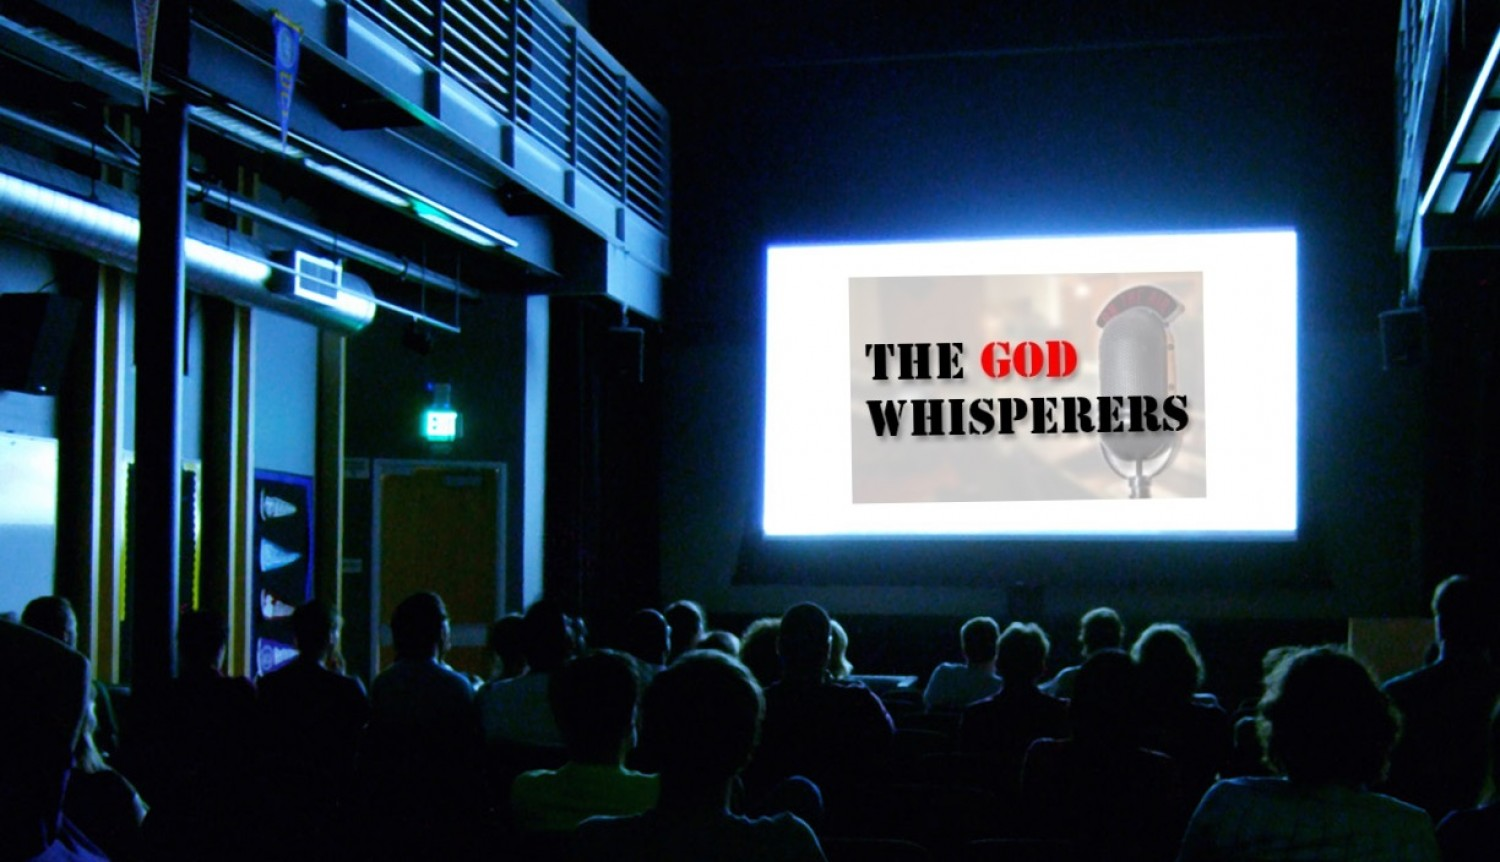 Pr. Ted Giese on The God Whisperers with Donofrio & Cwirla